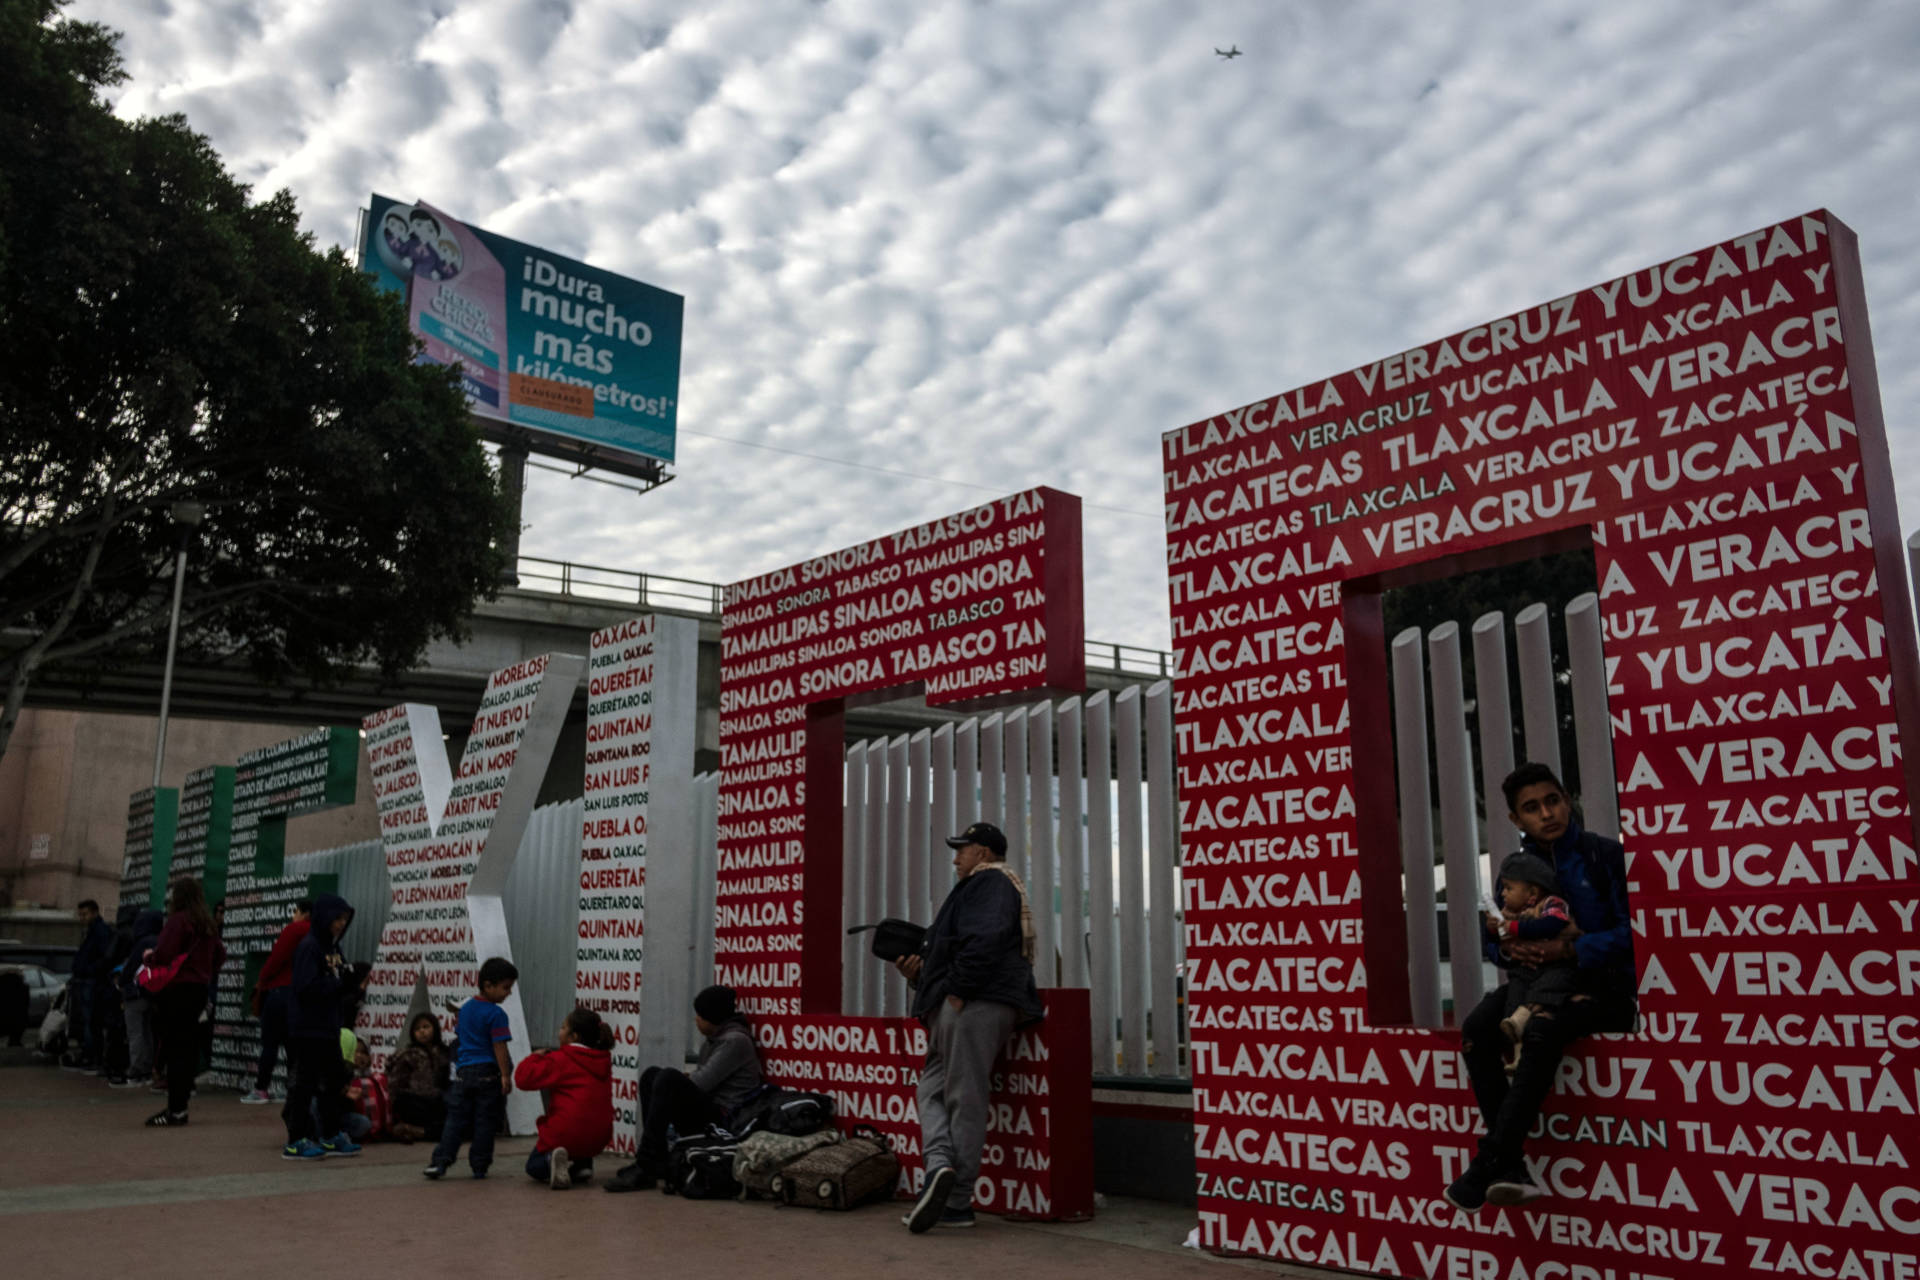 Asylum seekers wait at El Chaparral crossing port at the US-Mexico border, in Tijuana, Baja California state, Mexico, on January 29, 2019. GUILLERMO ARIAS/AFP/Getty Images